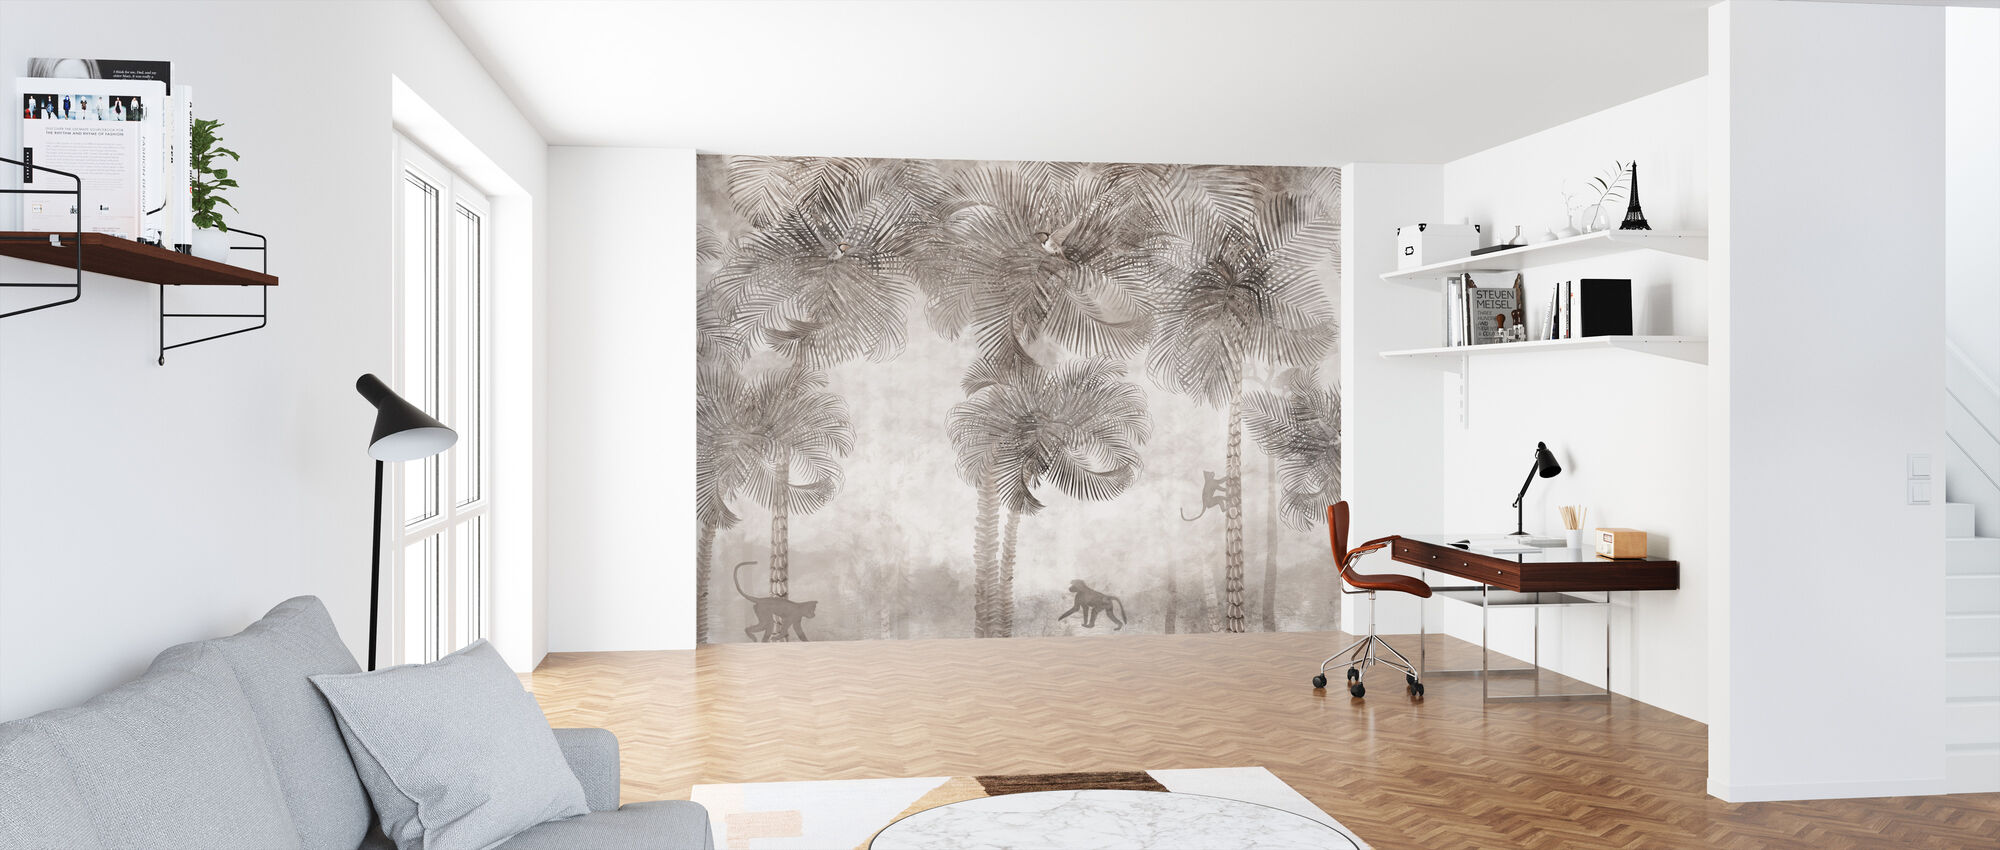 Monkeys Residence VI - Wallpaper - Office